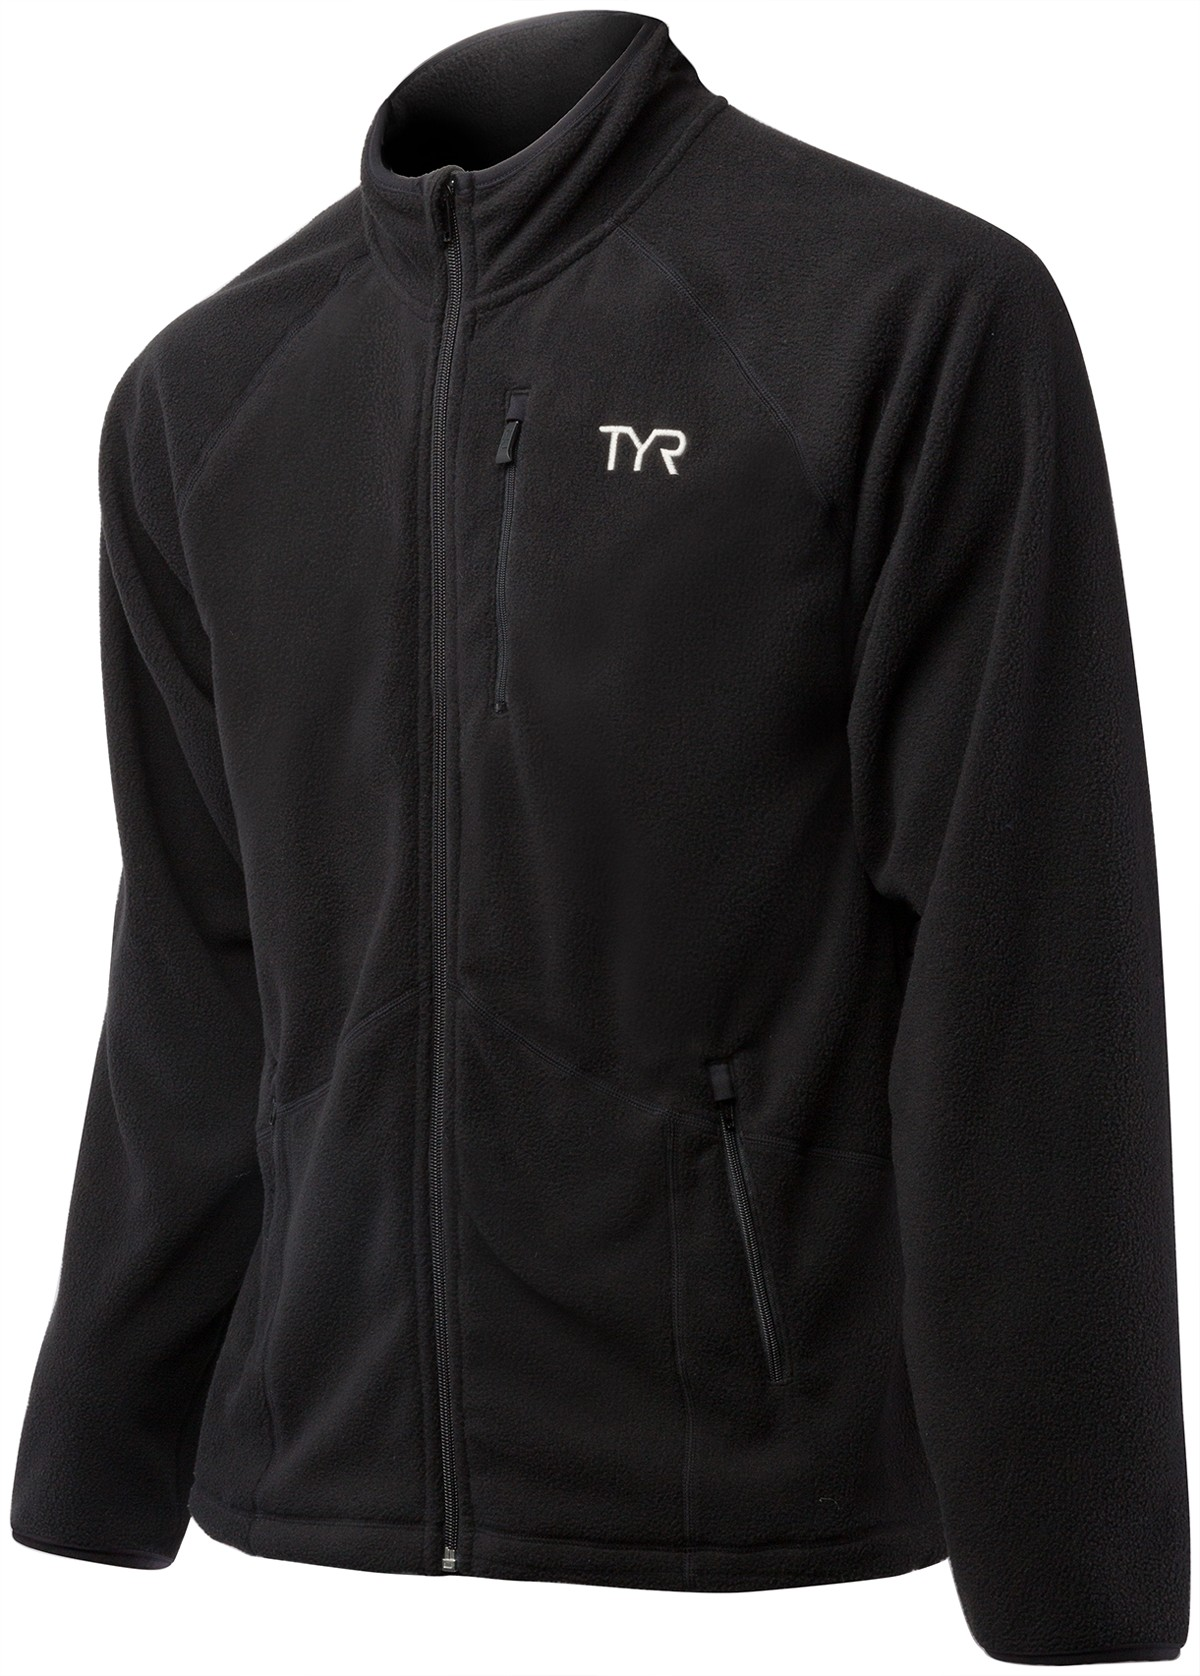 TYR Men's All Elements Micro Fleece Zip Up | TYR